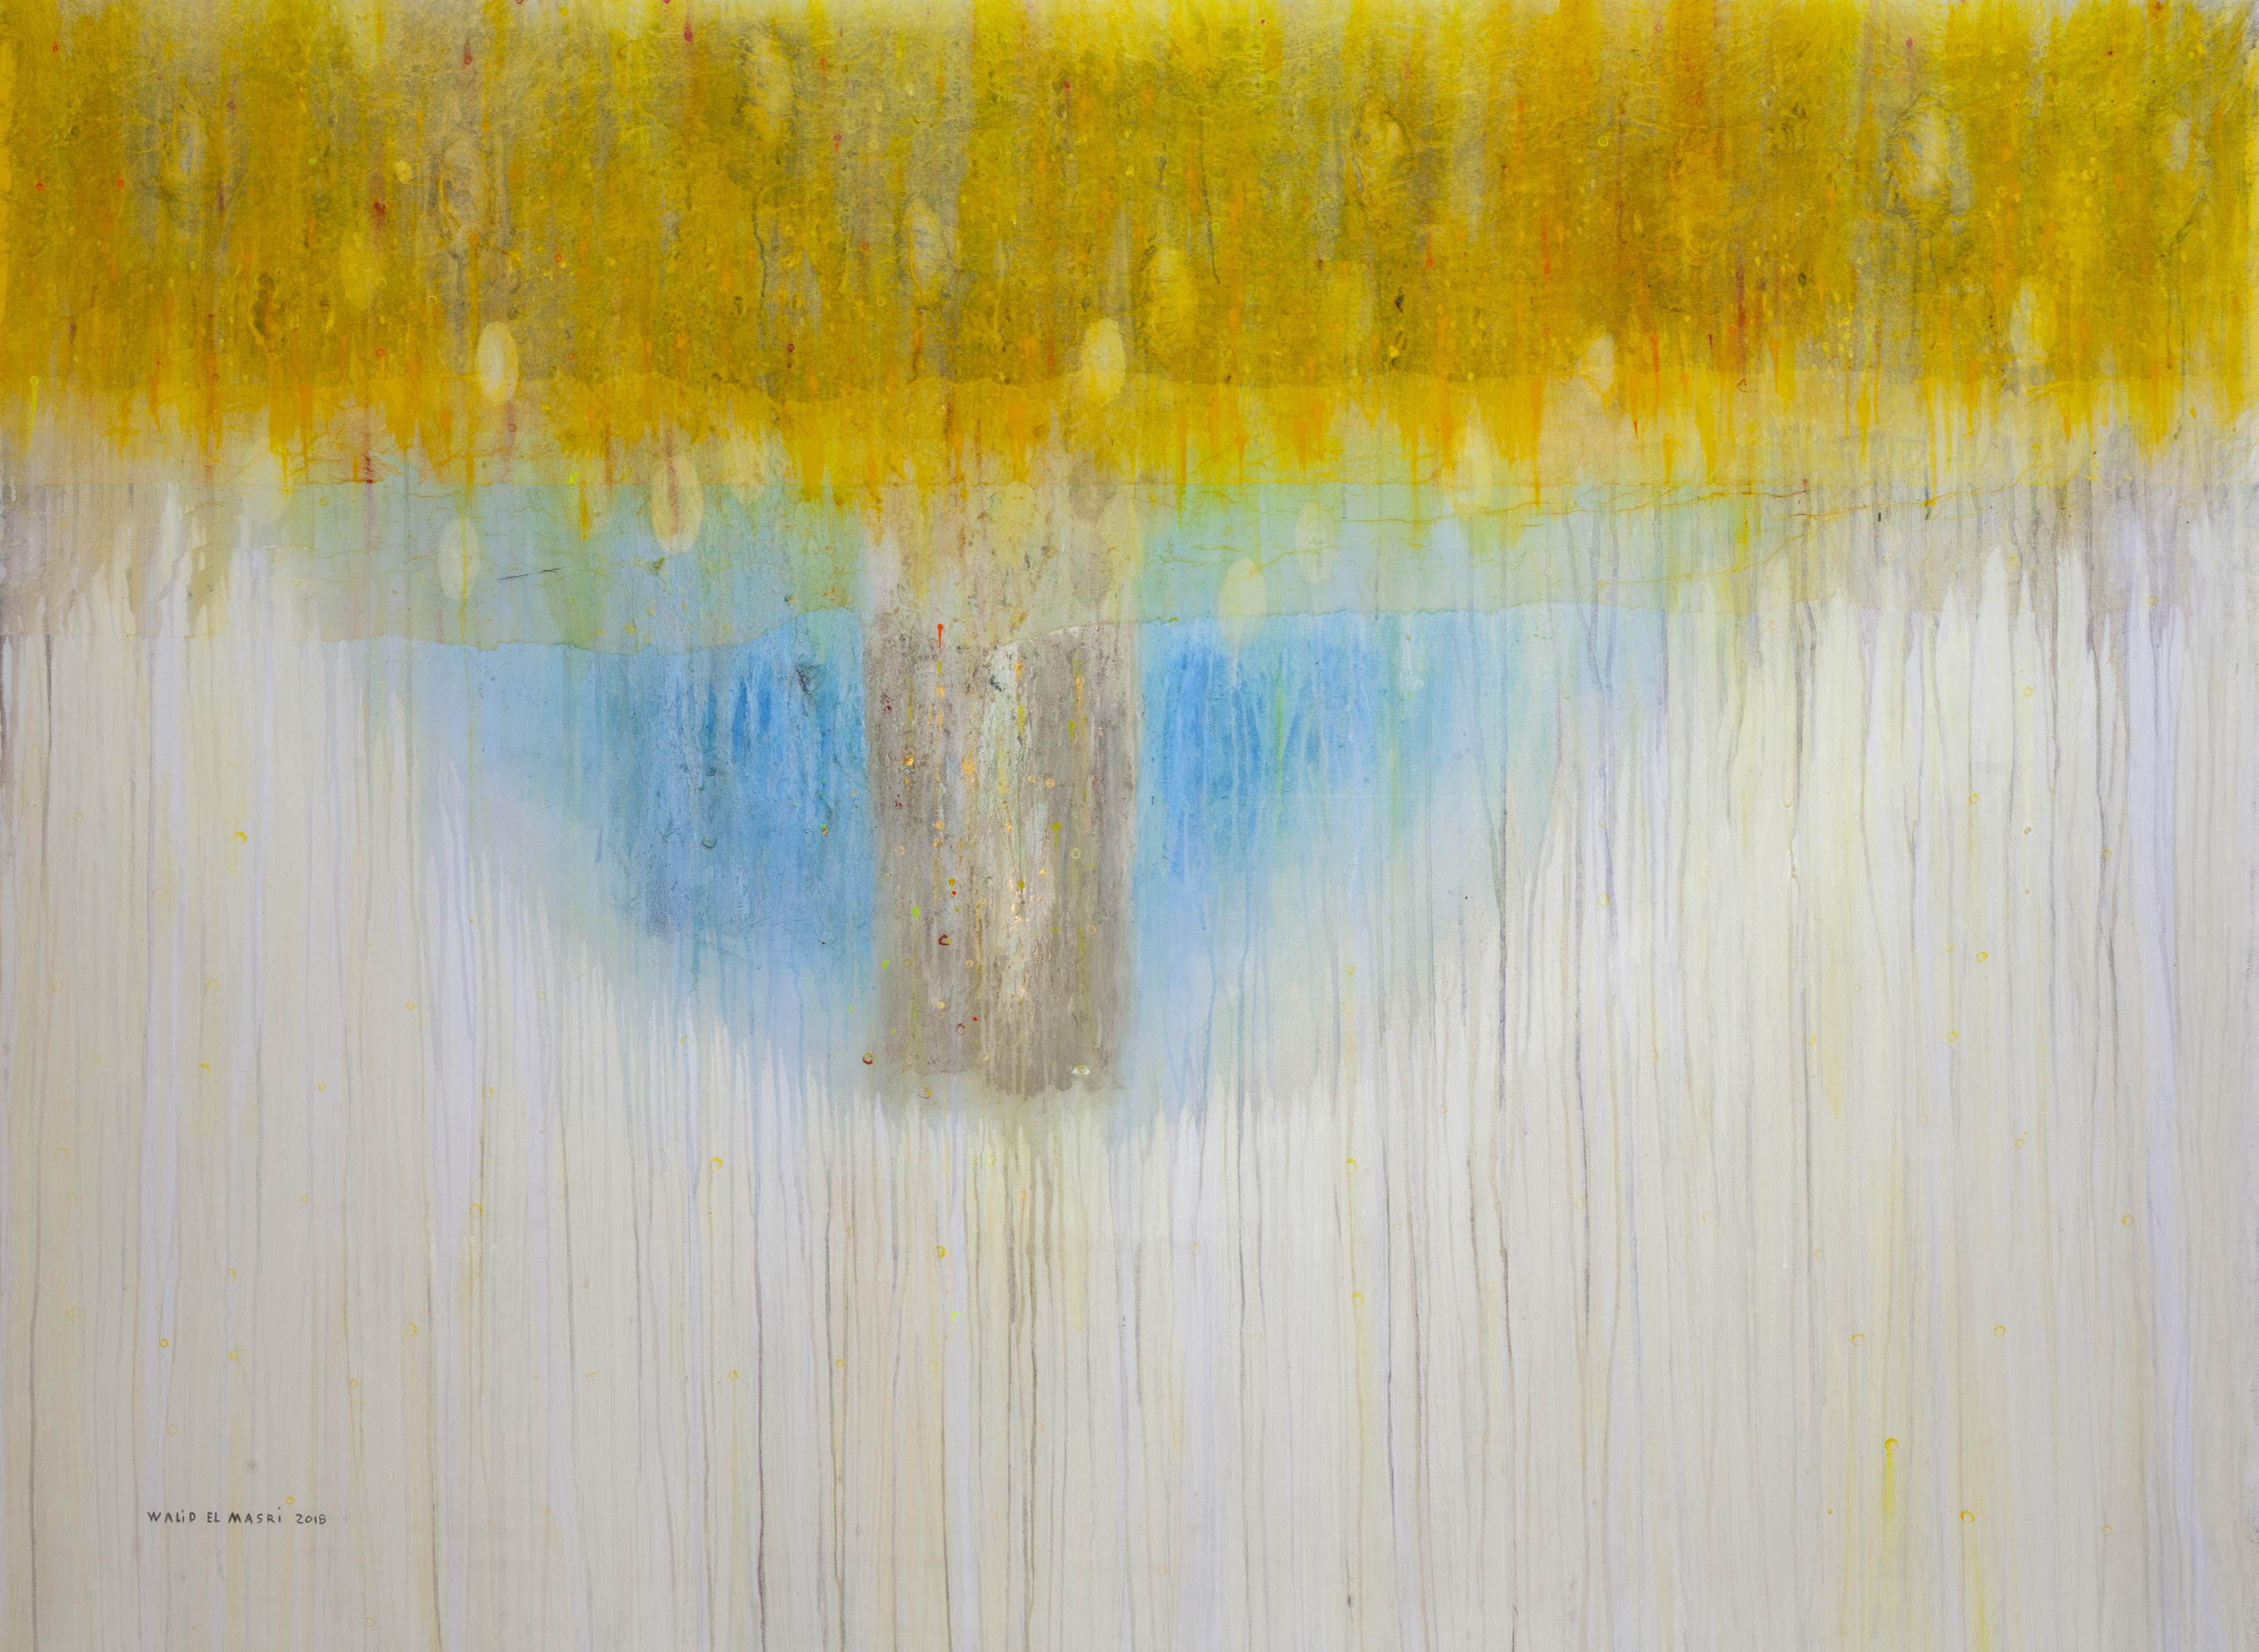 cocoon 2014 155x200 cm-Mixed Media on Canvas-6-